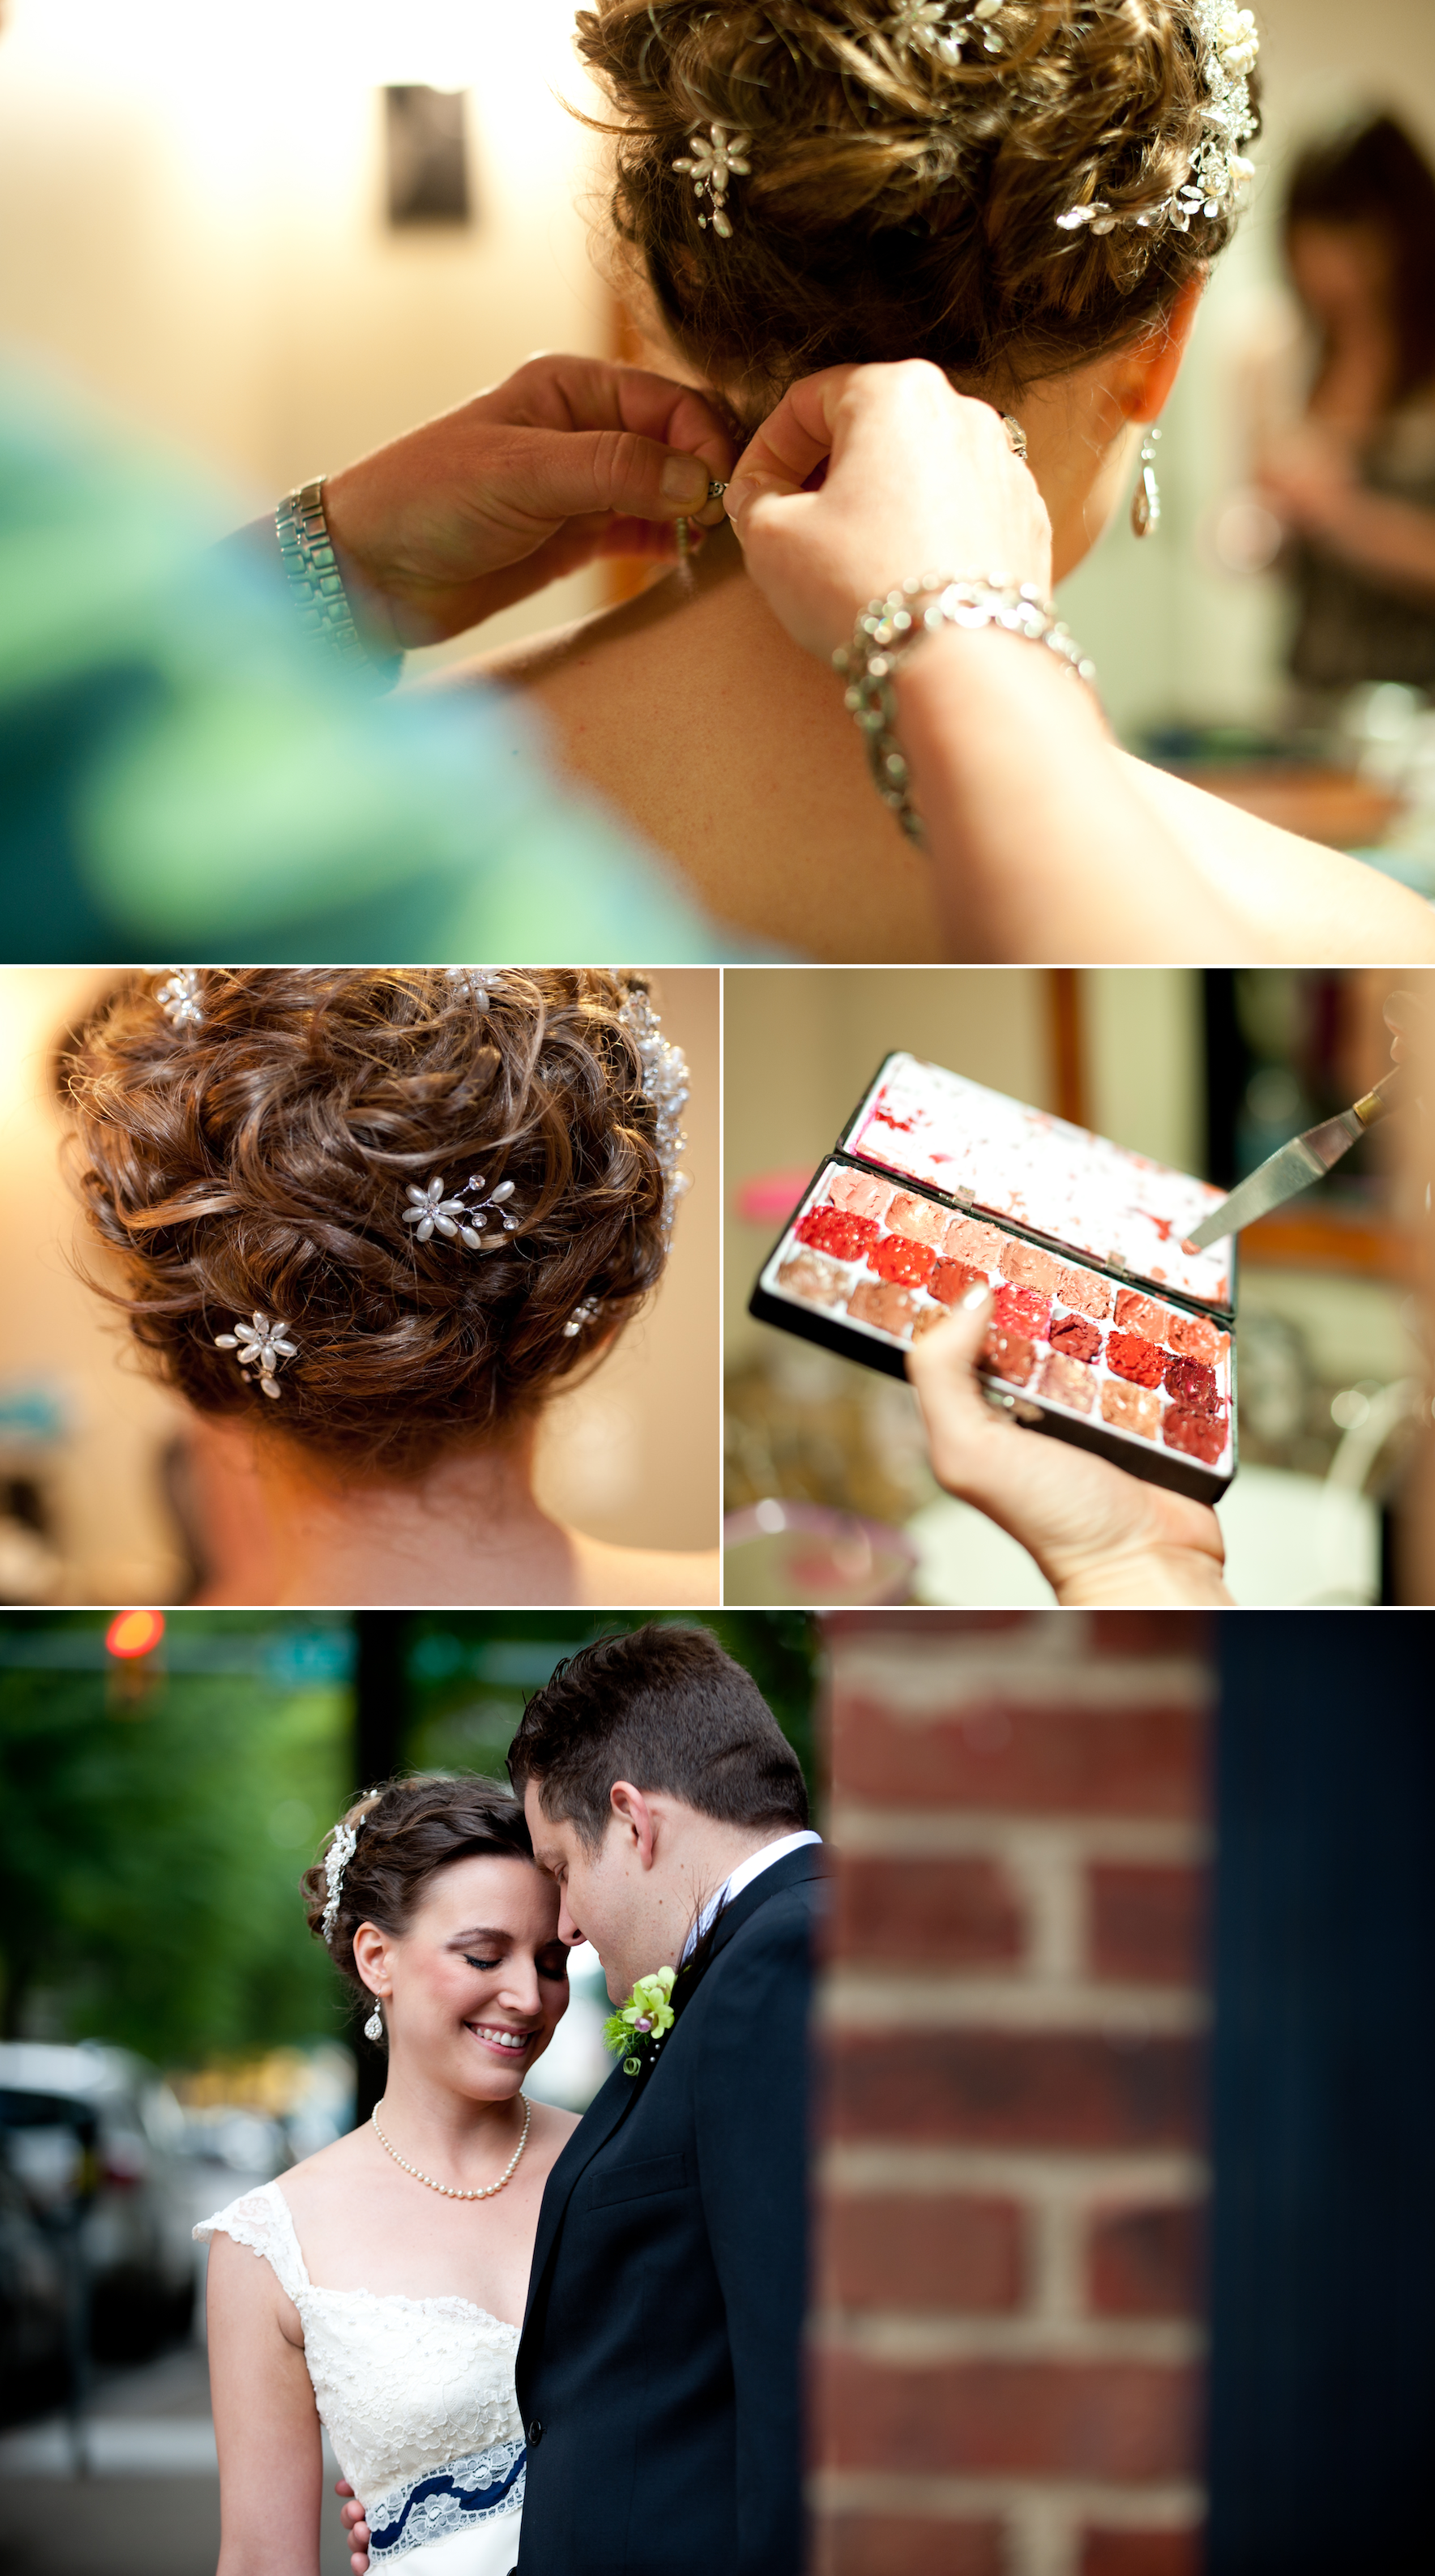 Scrabble-themed-wedding-virginia-bridal-updo.original